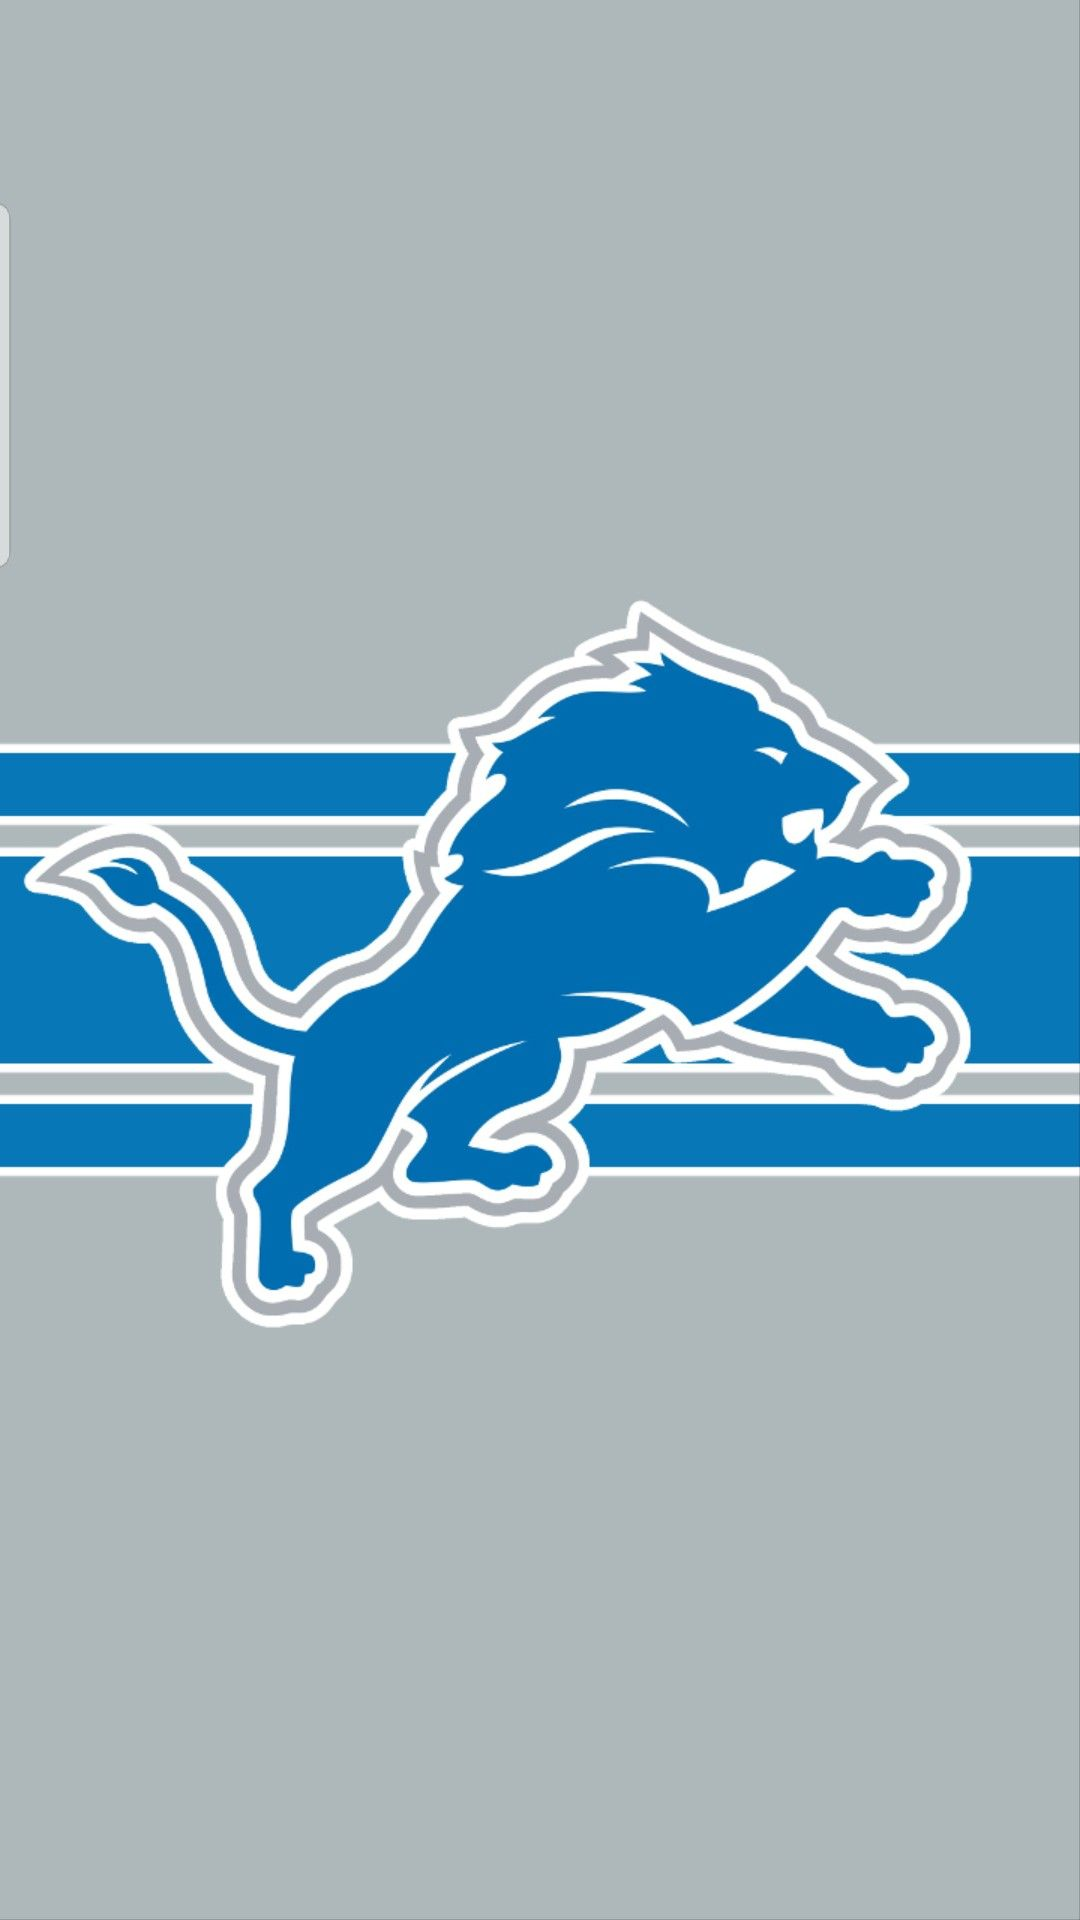 Pin By Archie Douglas On Michigan Sports For Mike Detroit Lions Wallpaper Detroit Lions Iphone Wallpaper